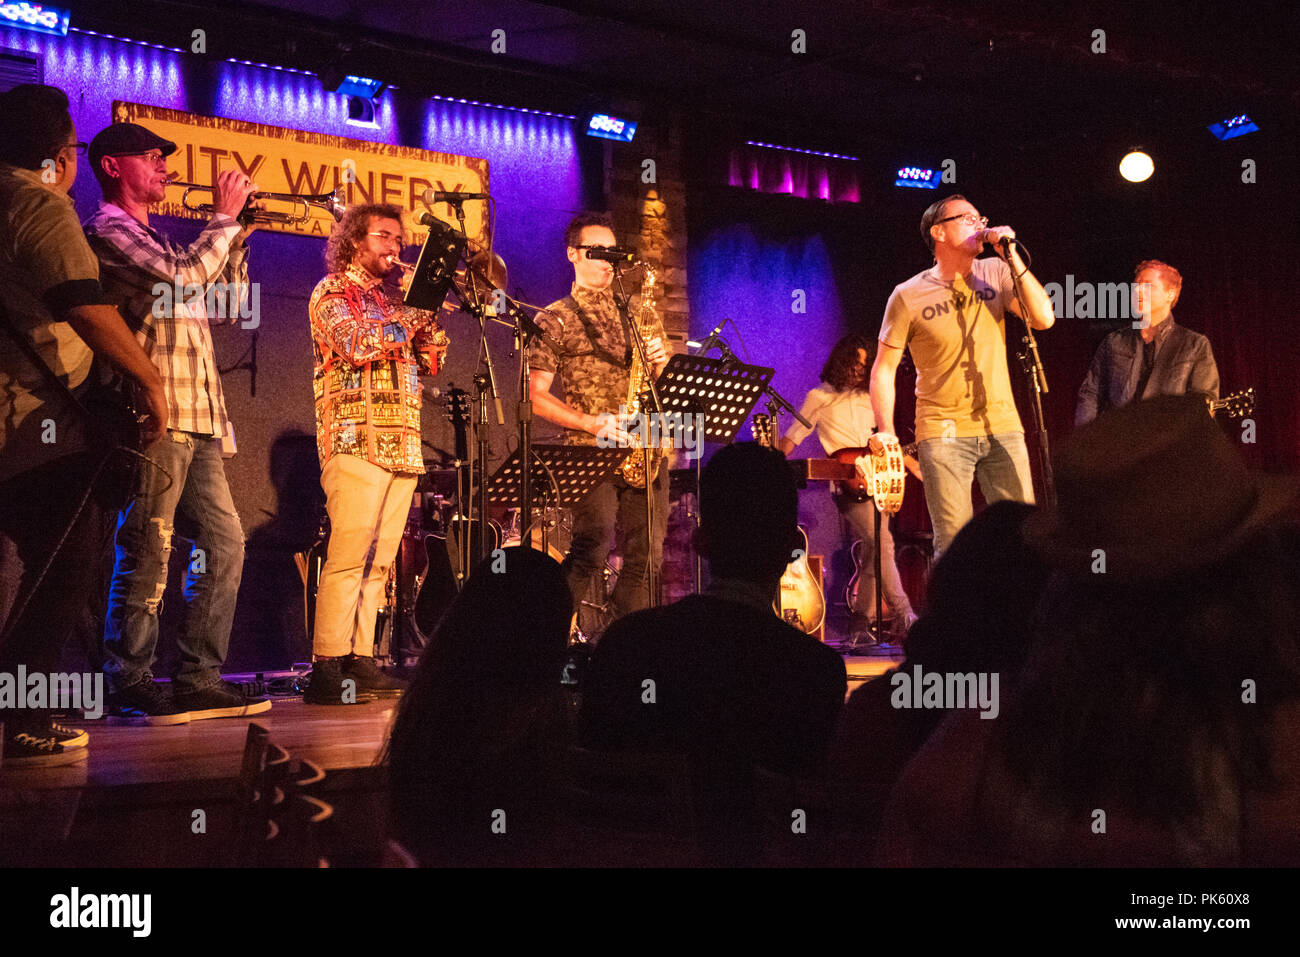 Smalltown Poets with special guest horn section performing live at City Winery in Atlanta, Georgia. (USA) - Stock Image